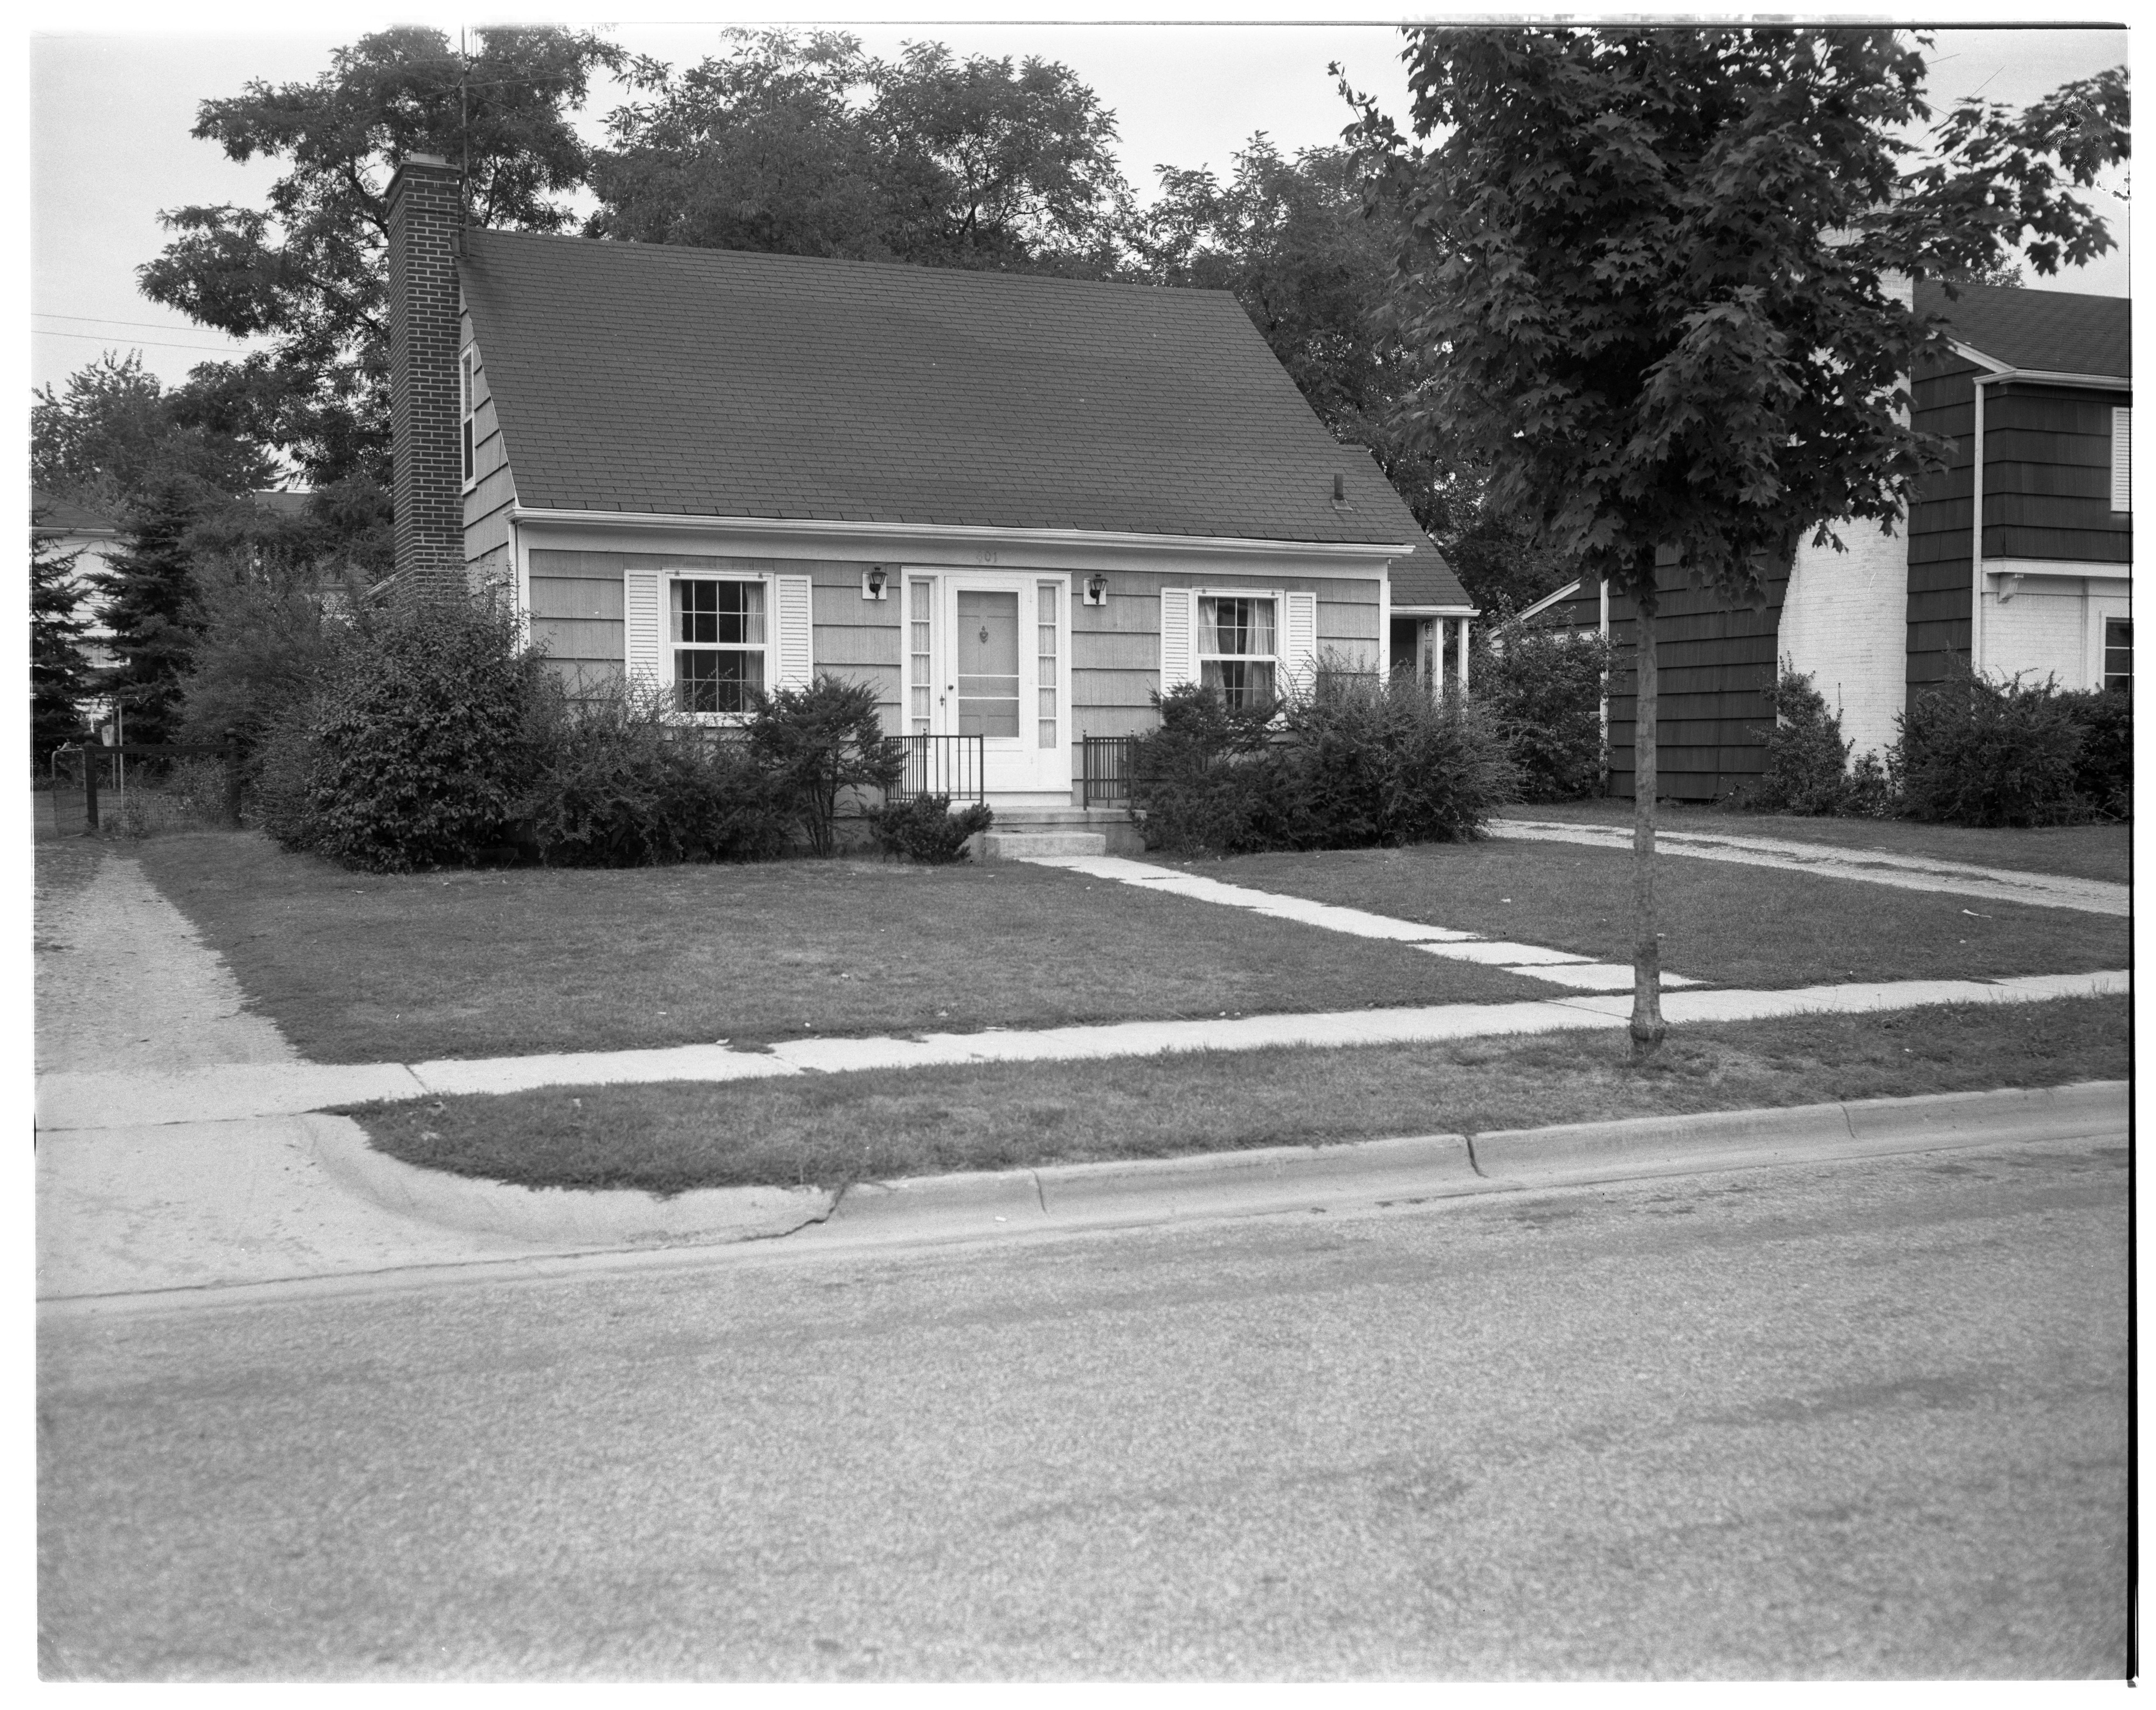 Model Home in Forestbrooke Subdivision, September 1960 image